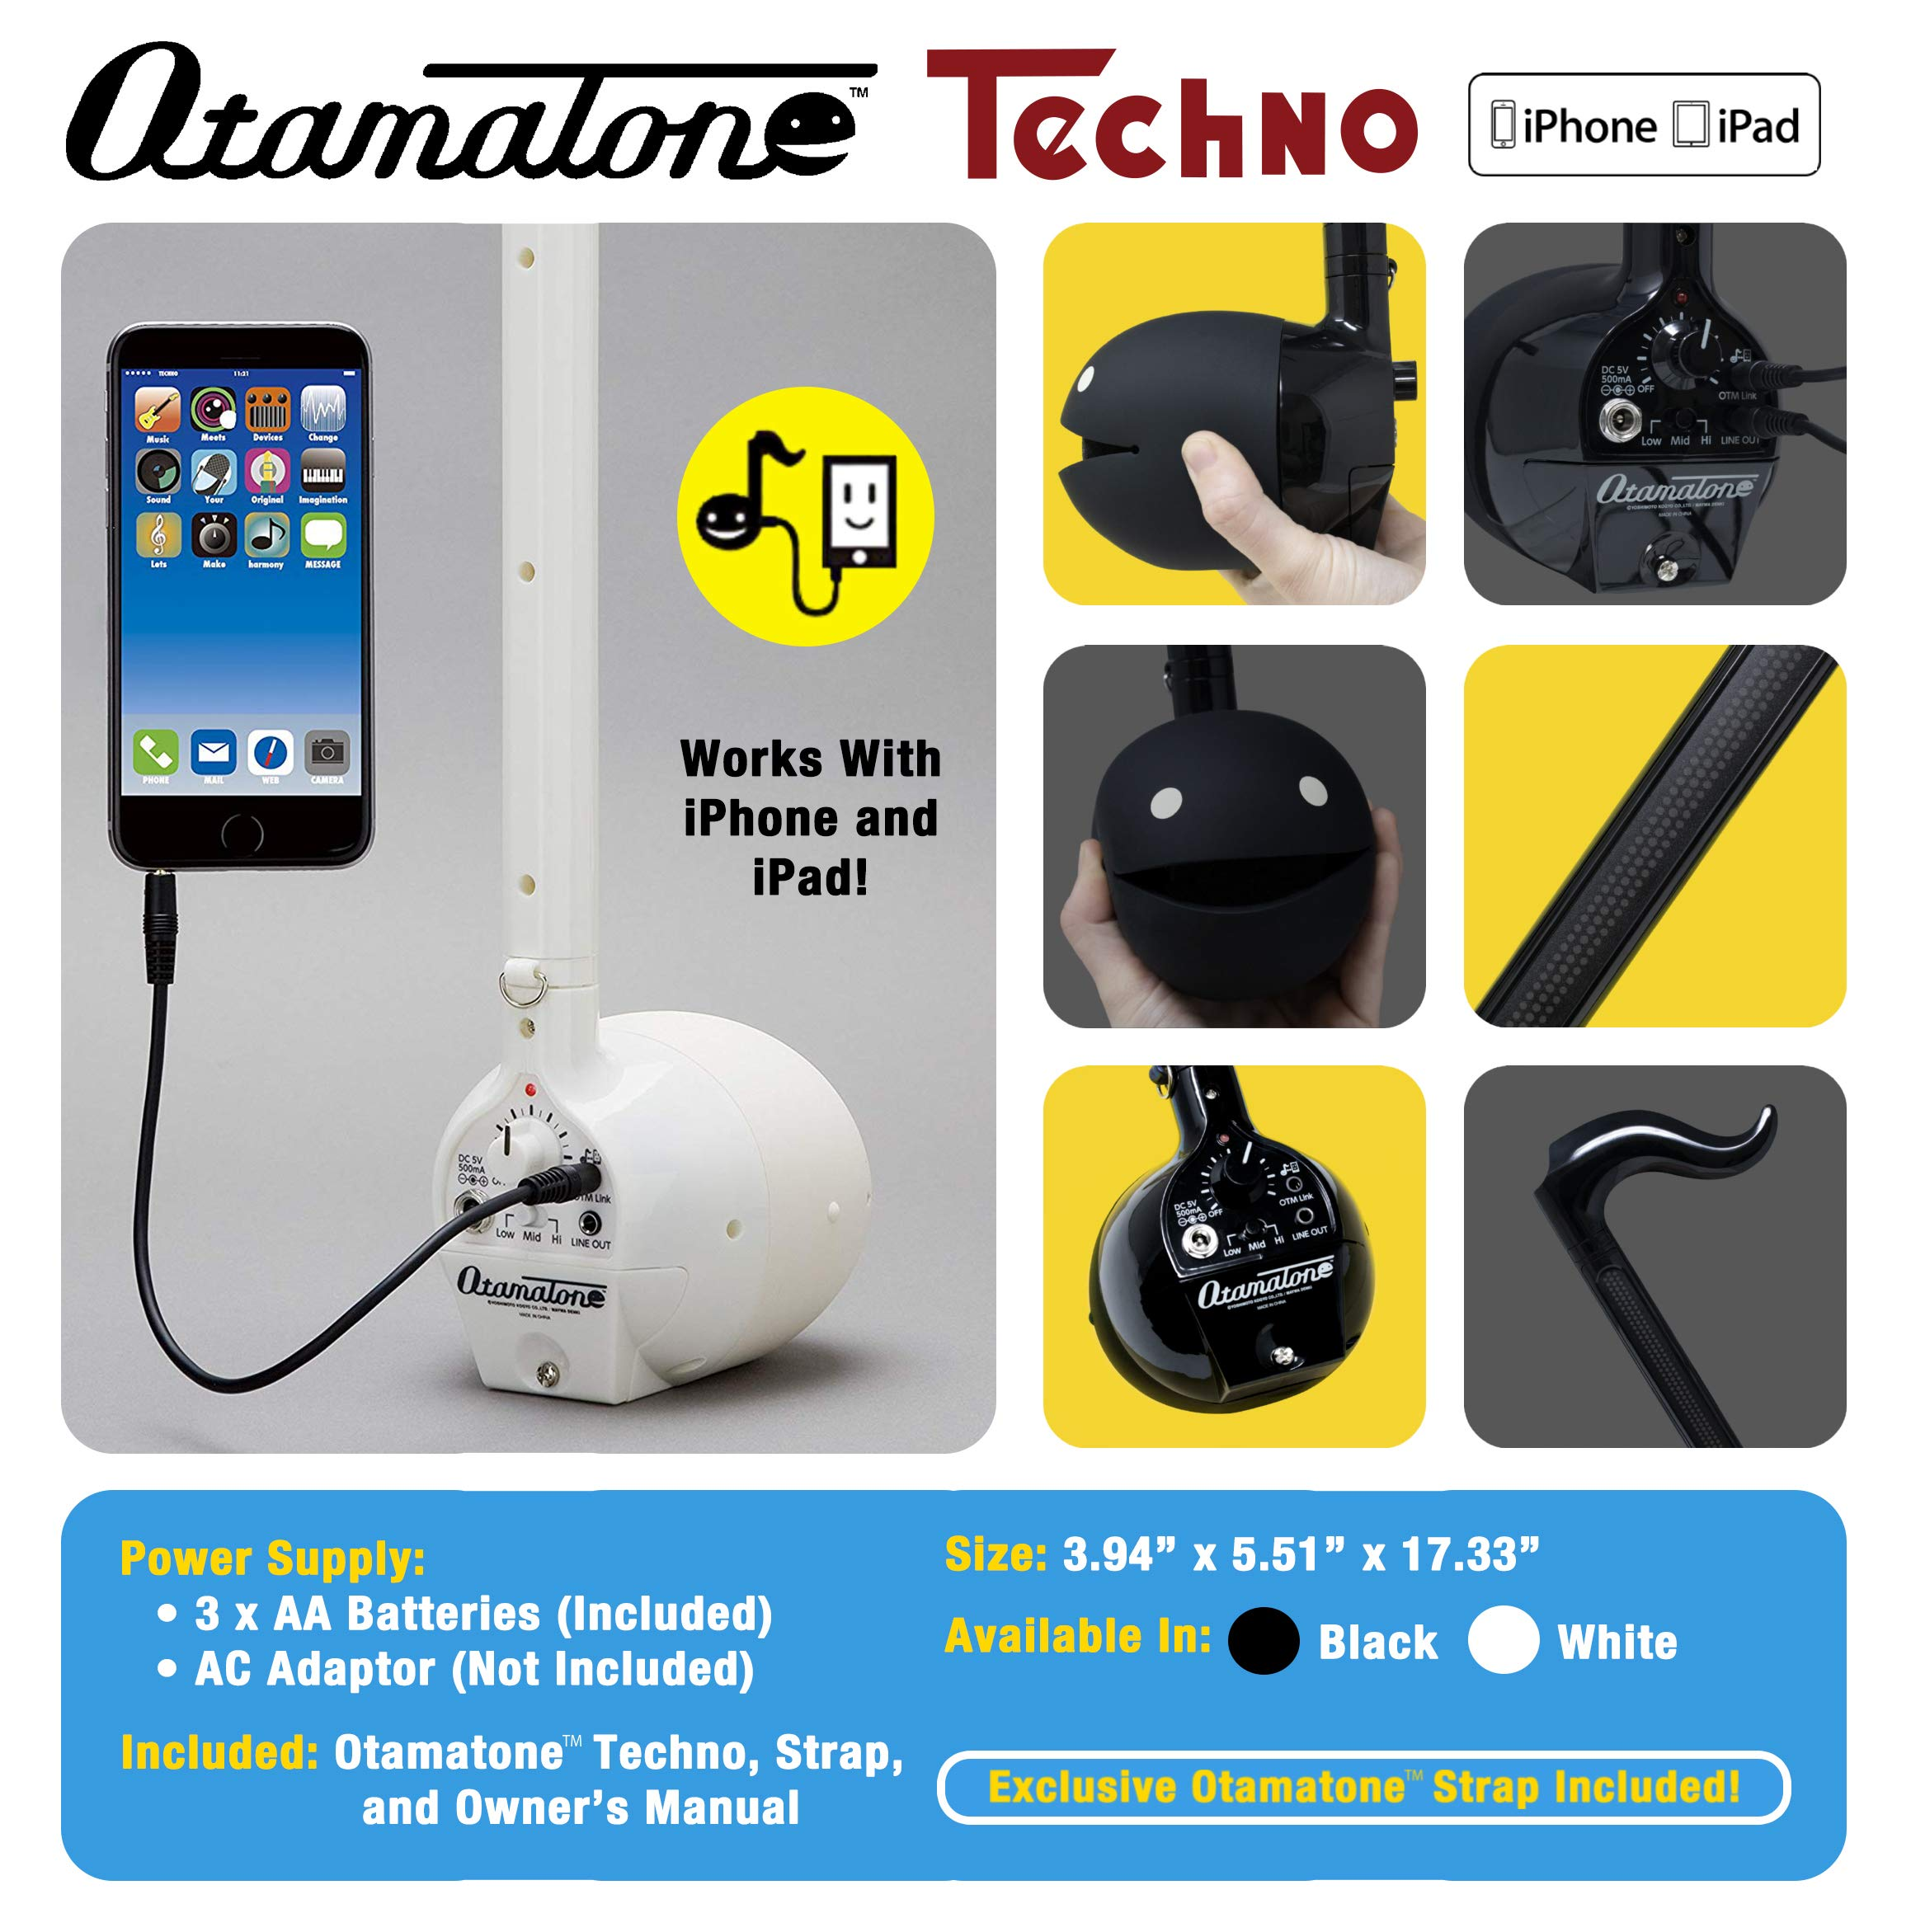 Otamatone ''Techno'' [Japanese Edition] Electronic Musical Instrument Synthesizer [Music Link connect] with a smartphone (iPhone and iPad iOS / Android App) from Japan by Cube / Maywa Denki, White by Otamatone (Image #2)